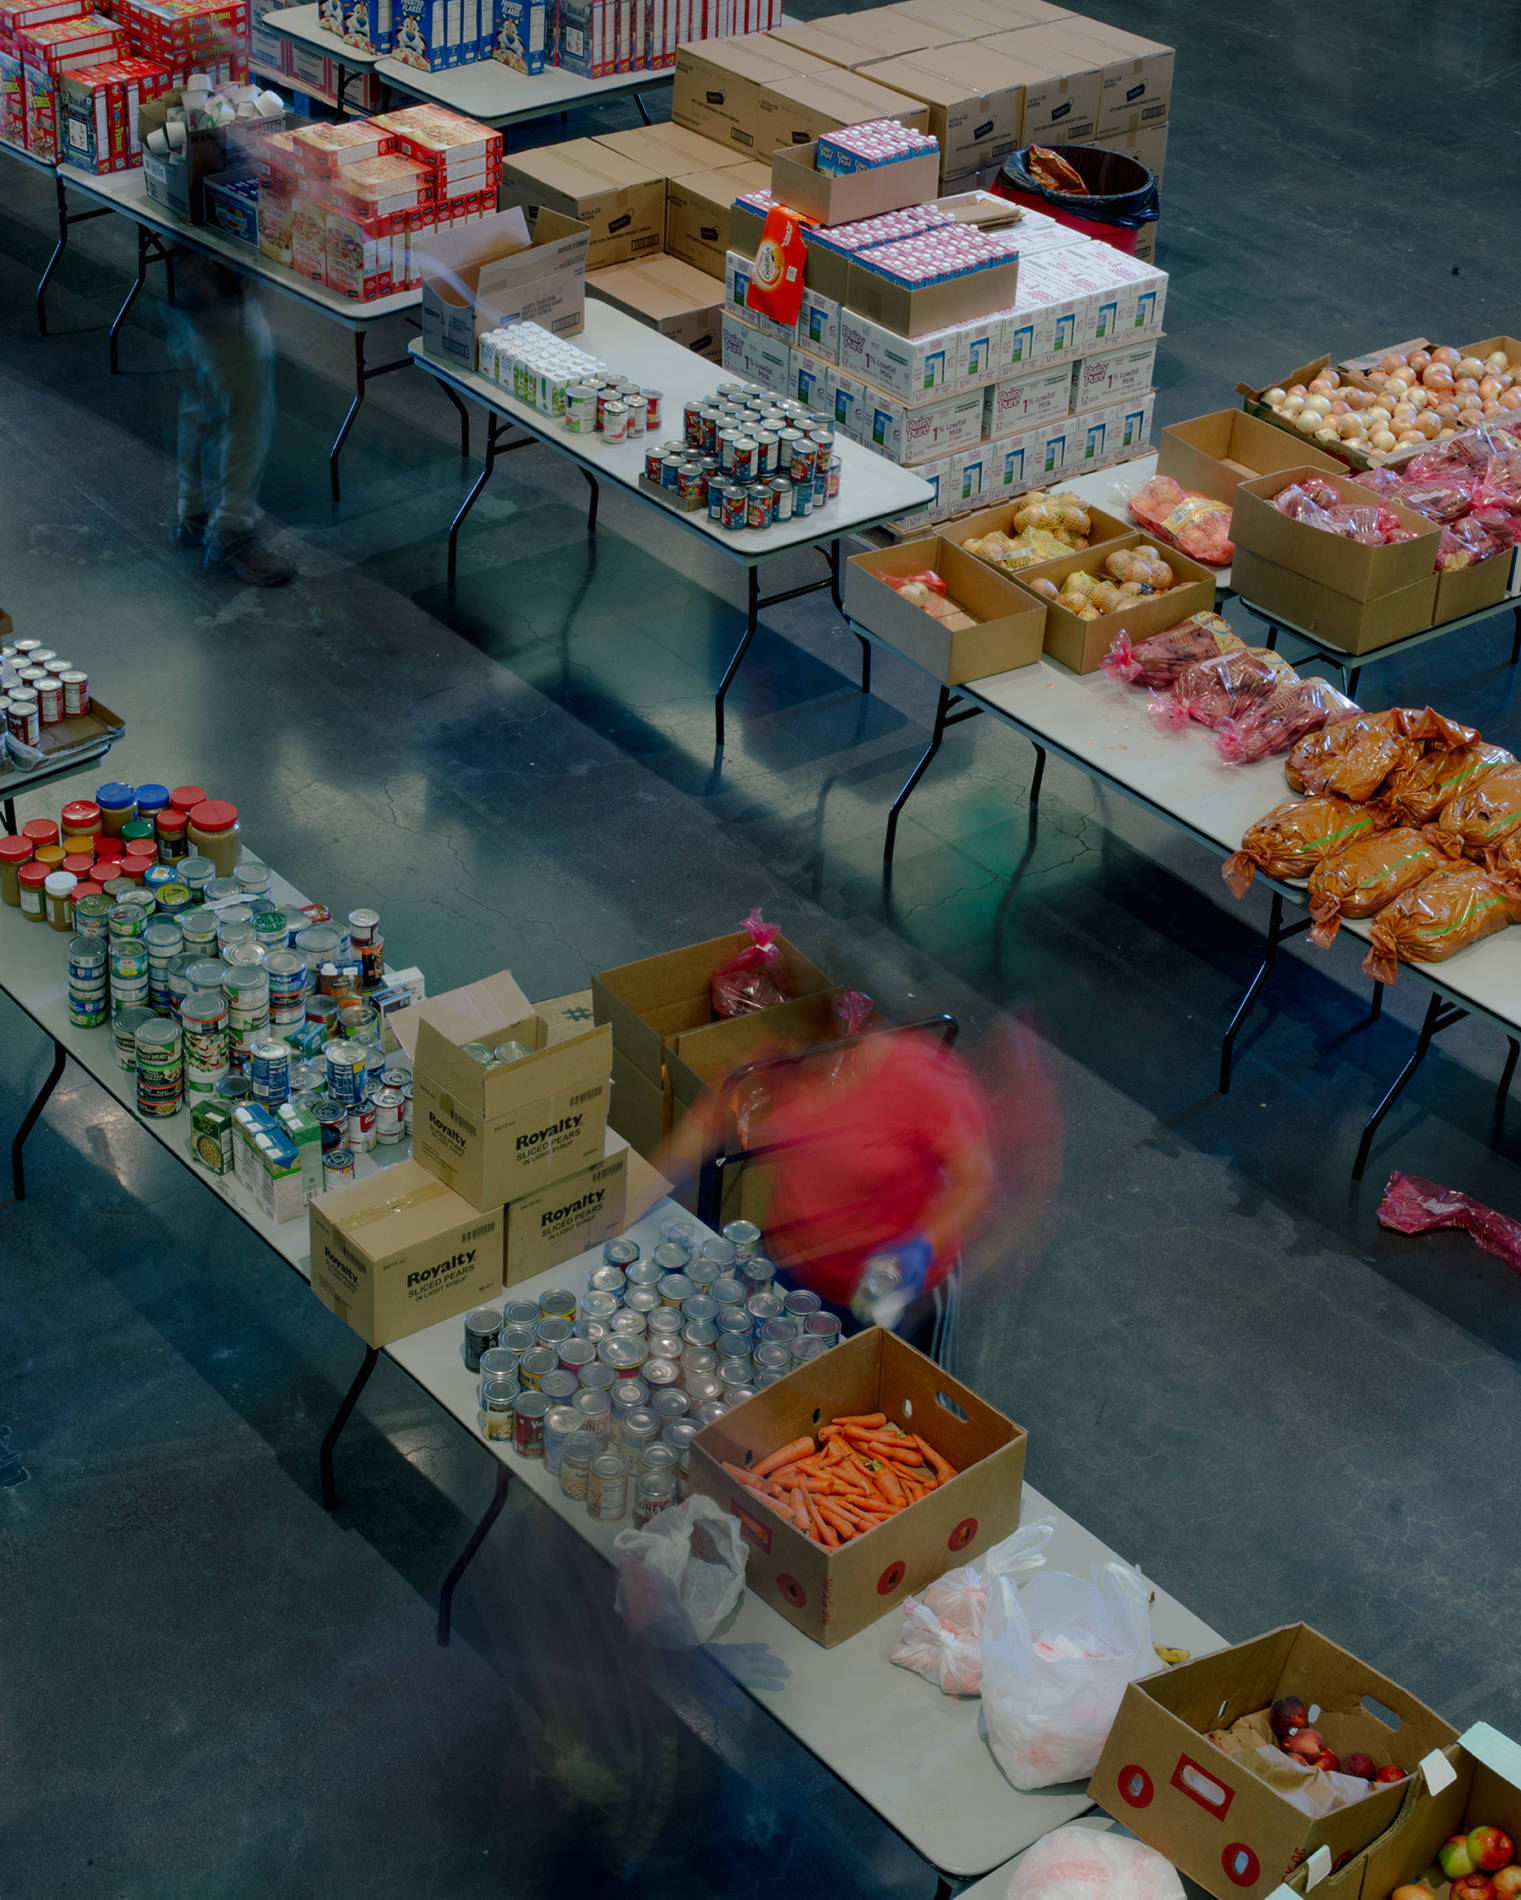 The Rams Against Hunger food pantry